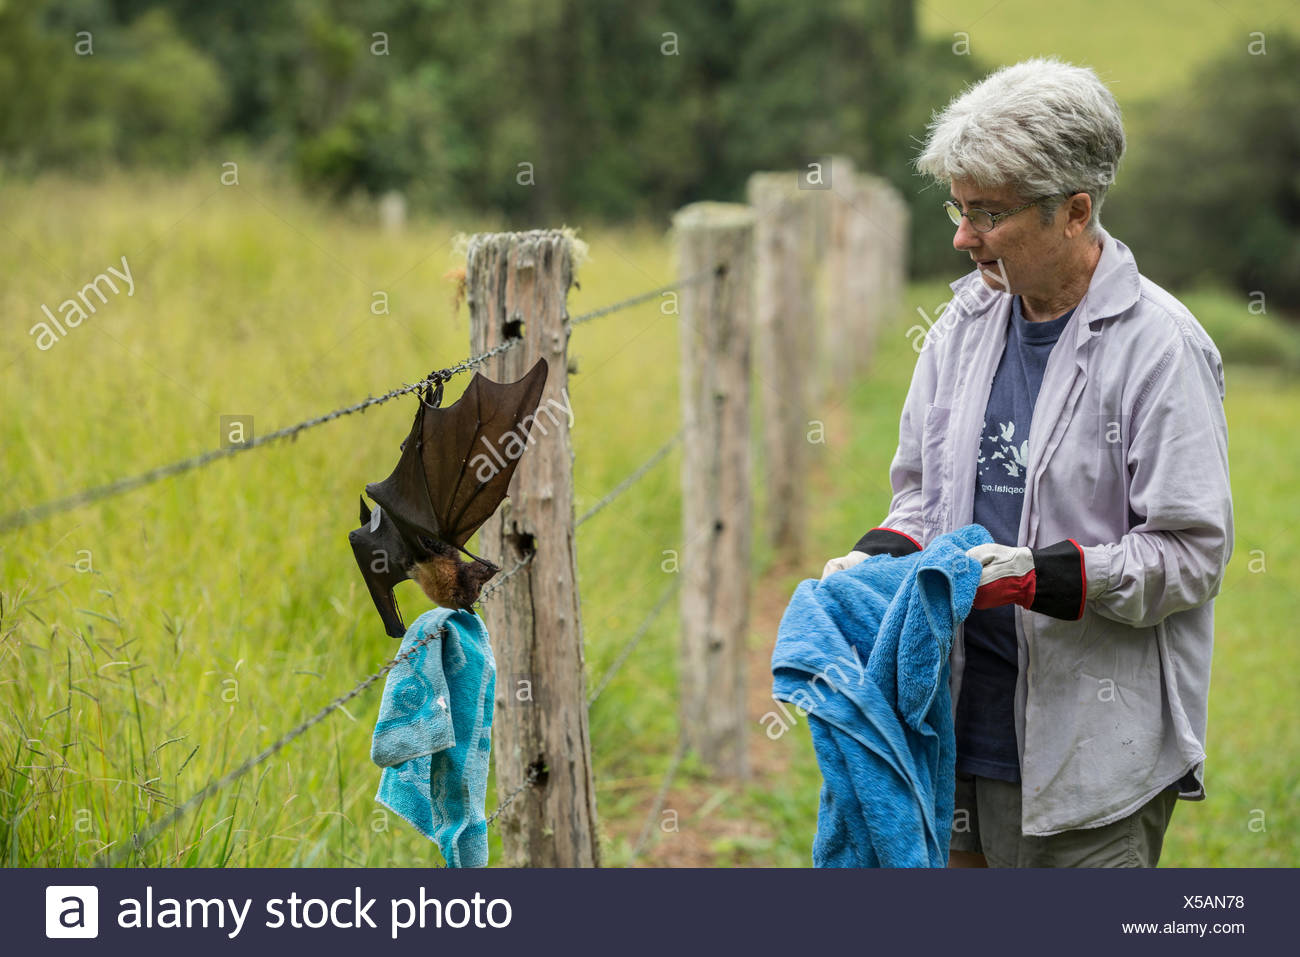 Tolga Bat Hospital director Jenny Maclean rescuing, Spectacled flying fox (Pteropus conspicillatus) caught in barbed wire fence. - Stock Image